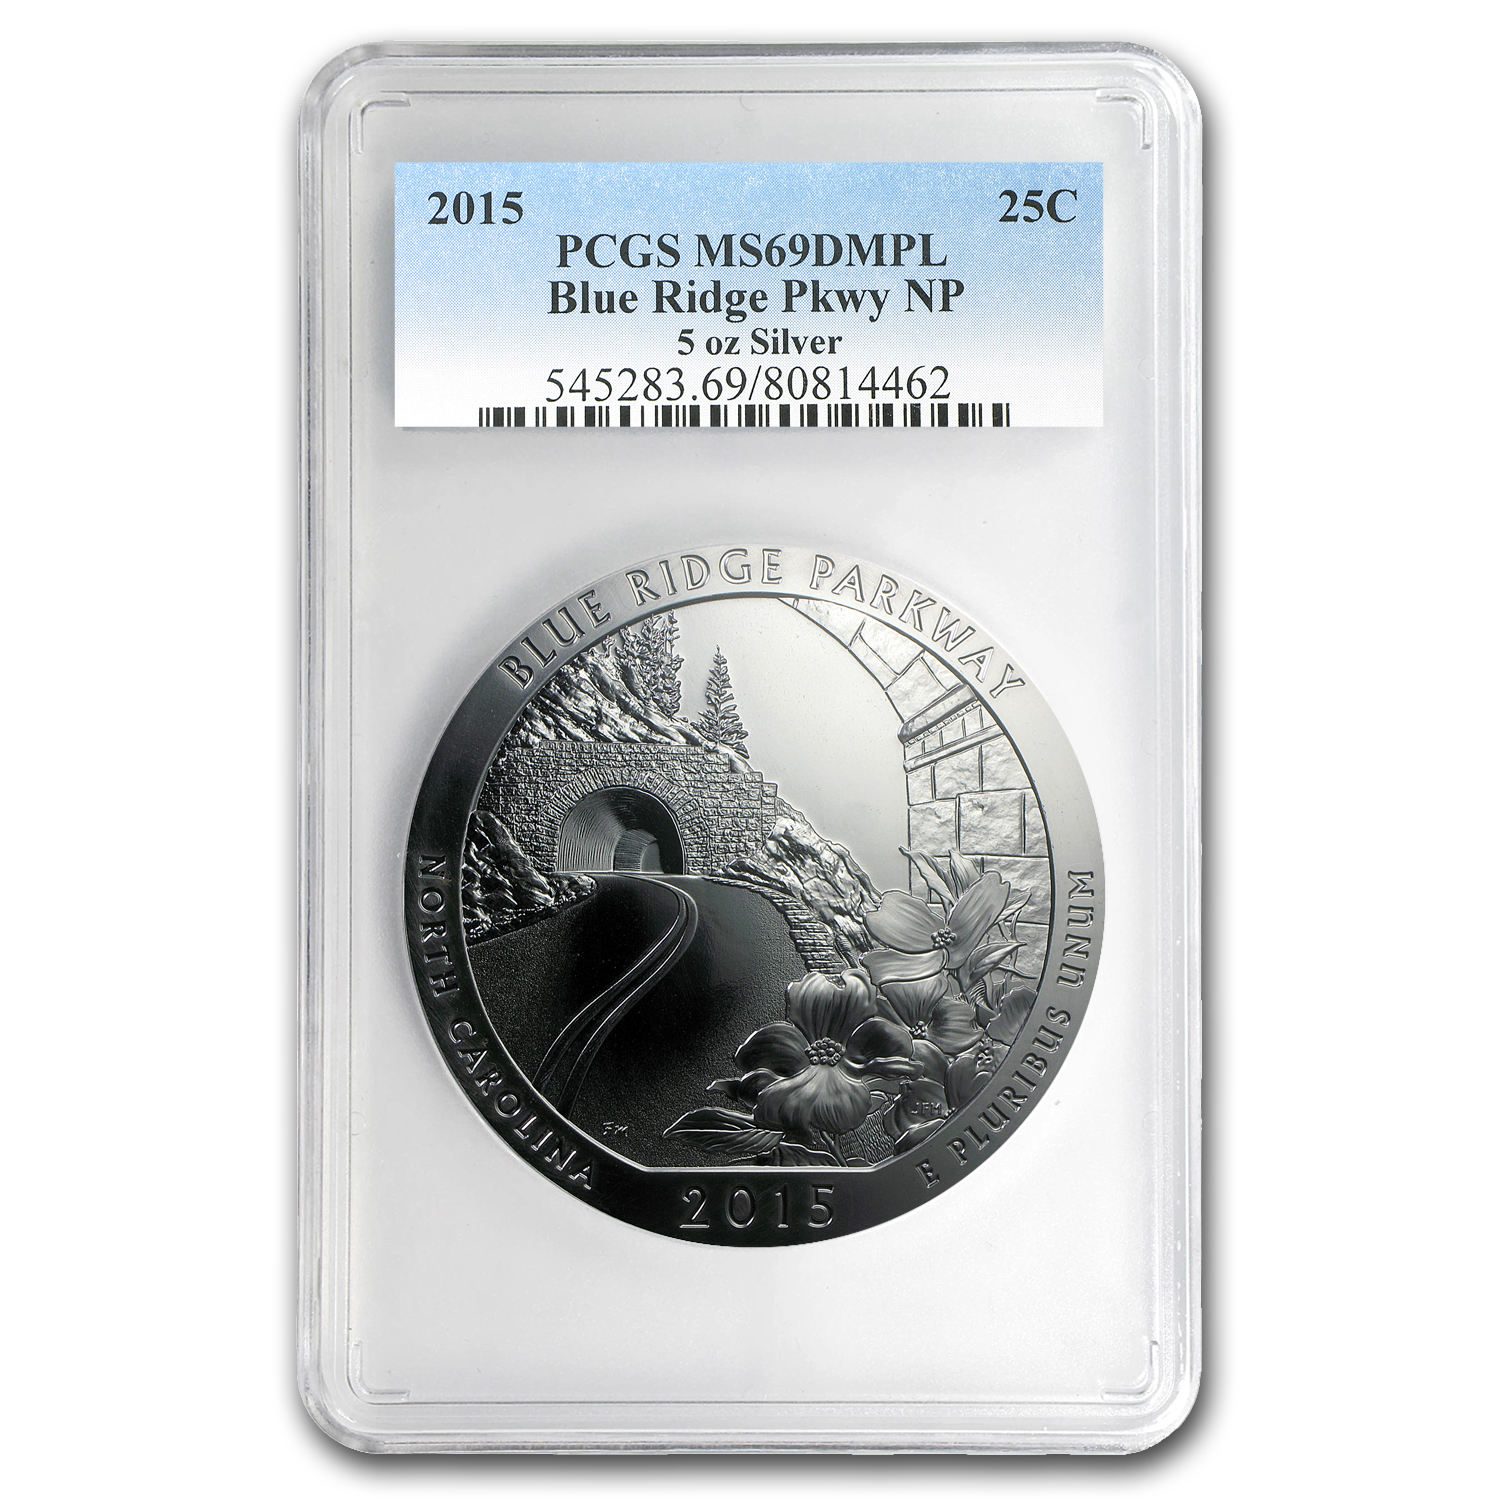 2015 5 oz Silver ATB Blue Ridge MS-69 DMPL PCGS